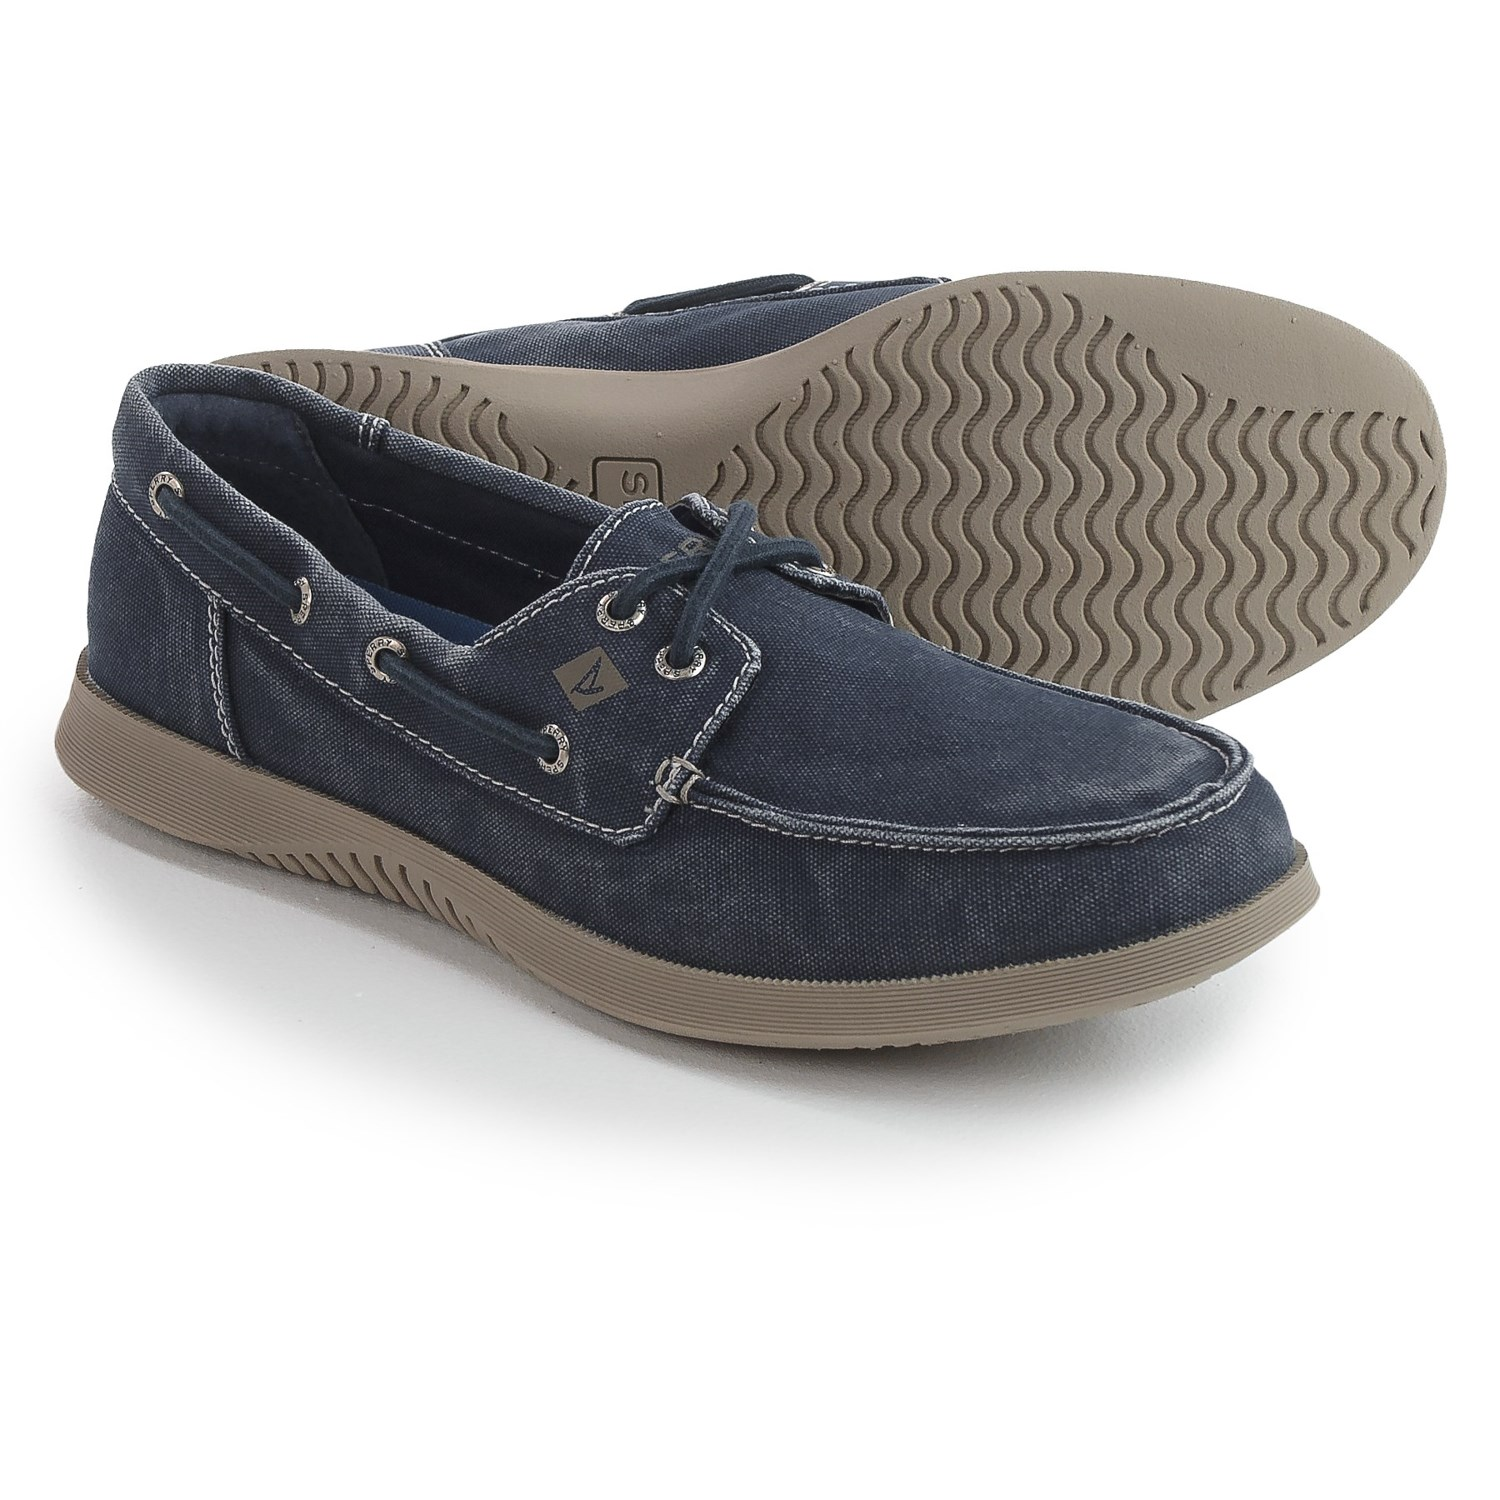 Sperry Shoes Online